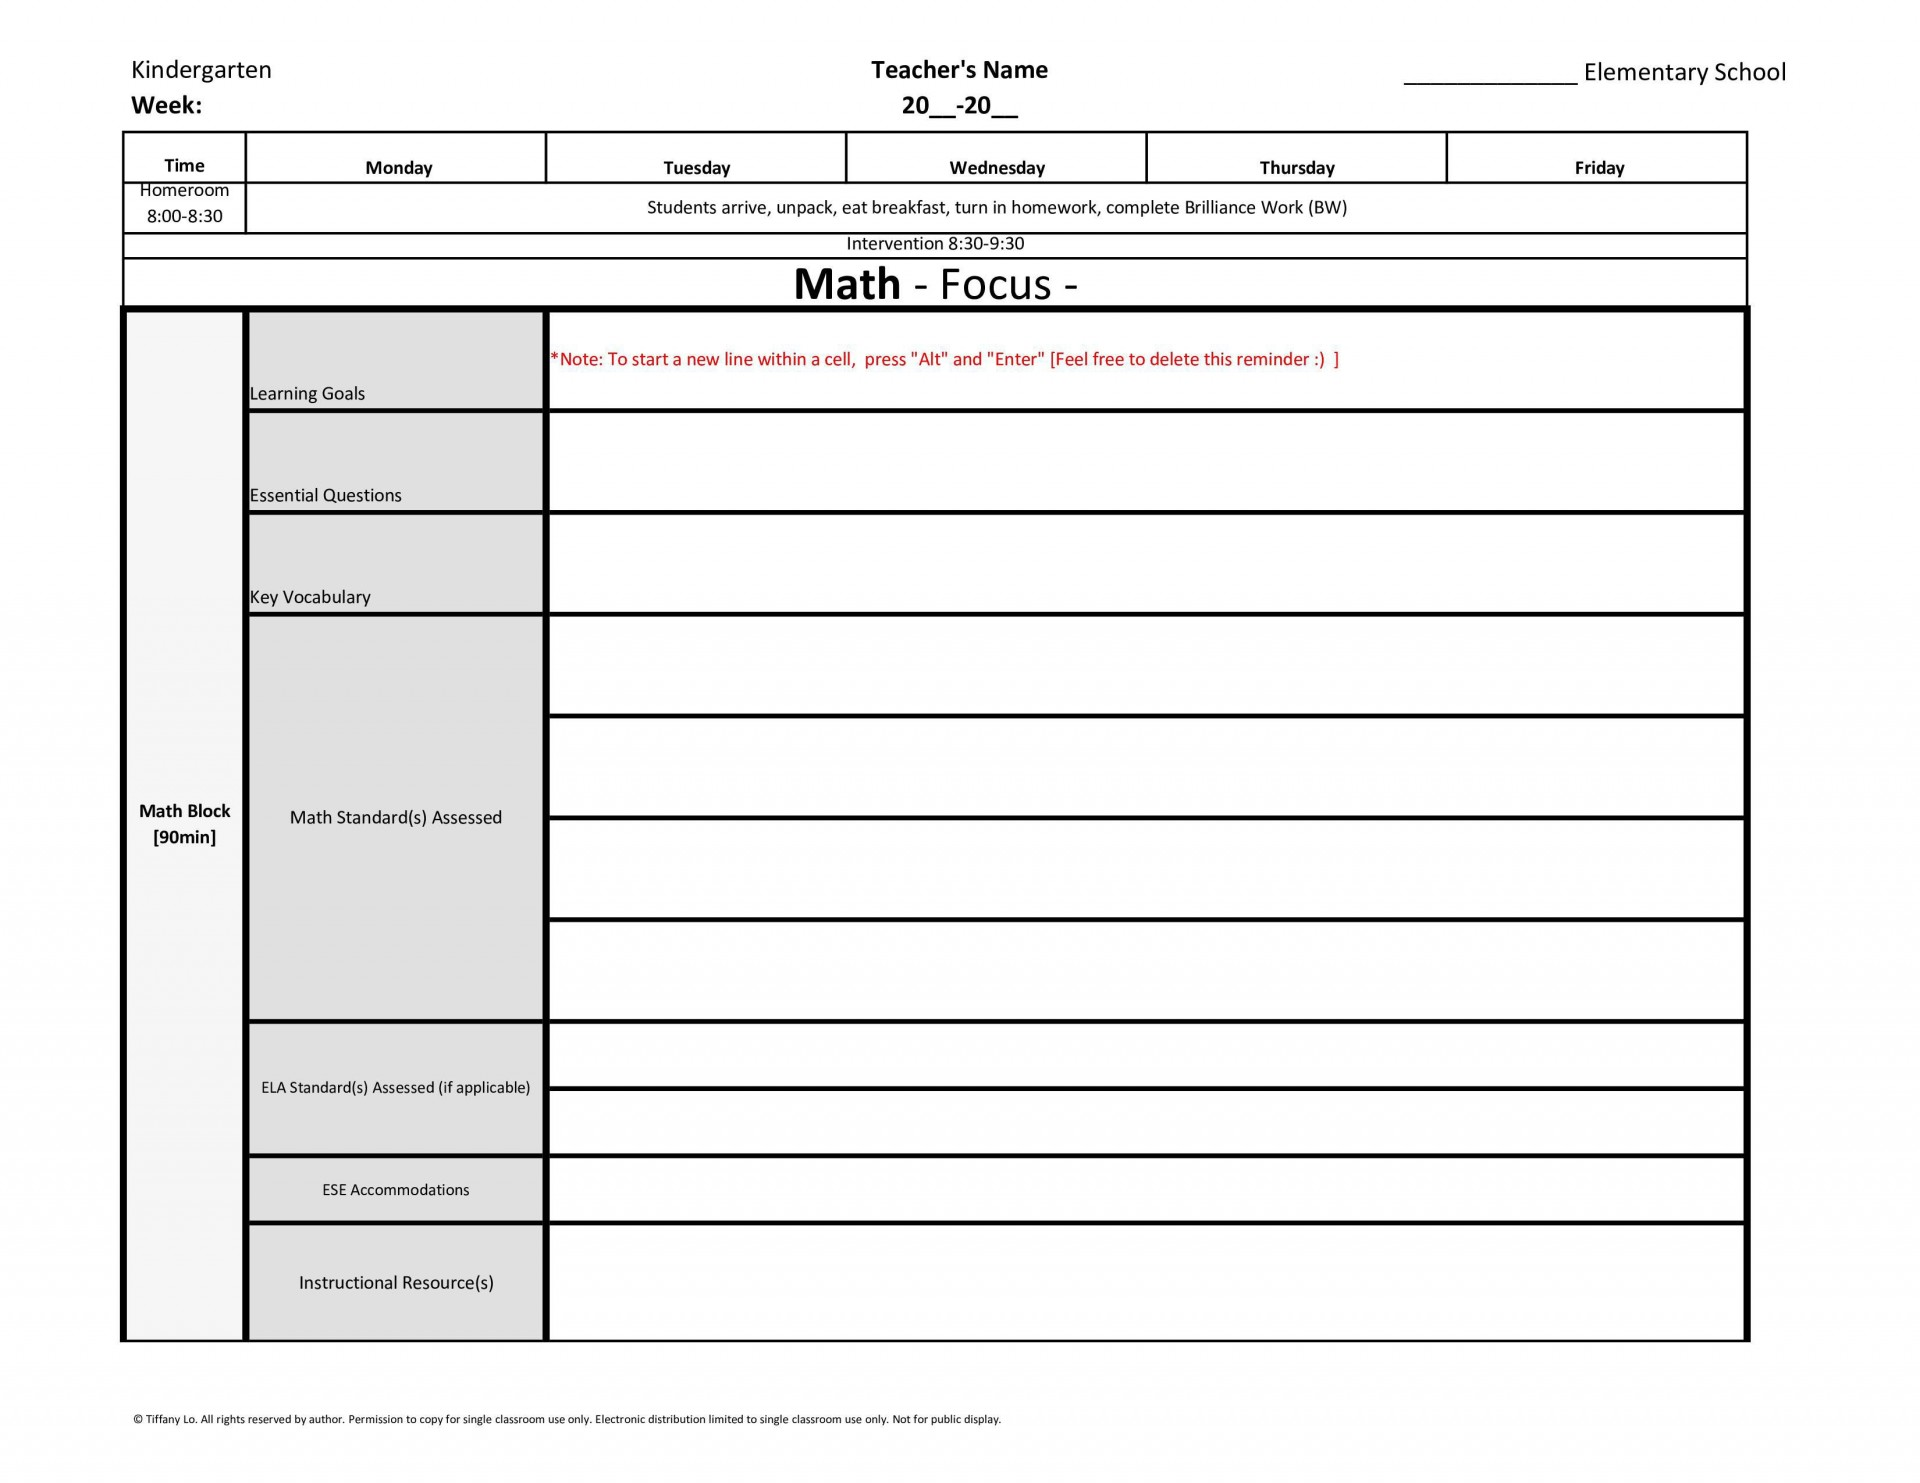 004 Frightening Weekly Lesson Plan Template Inspiration  Blank Free High School Danielson Google Doc1920